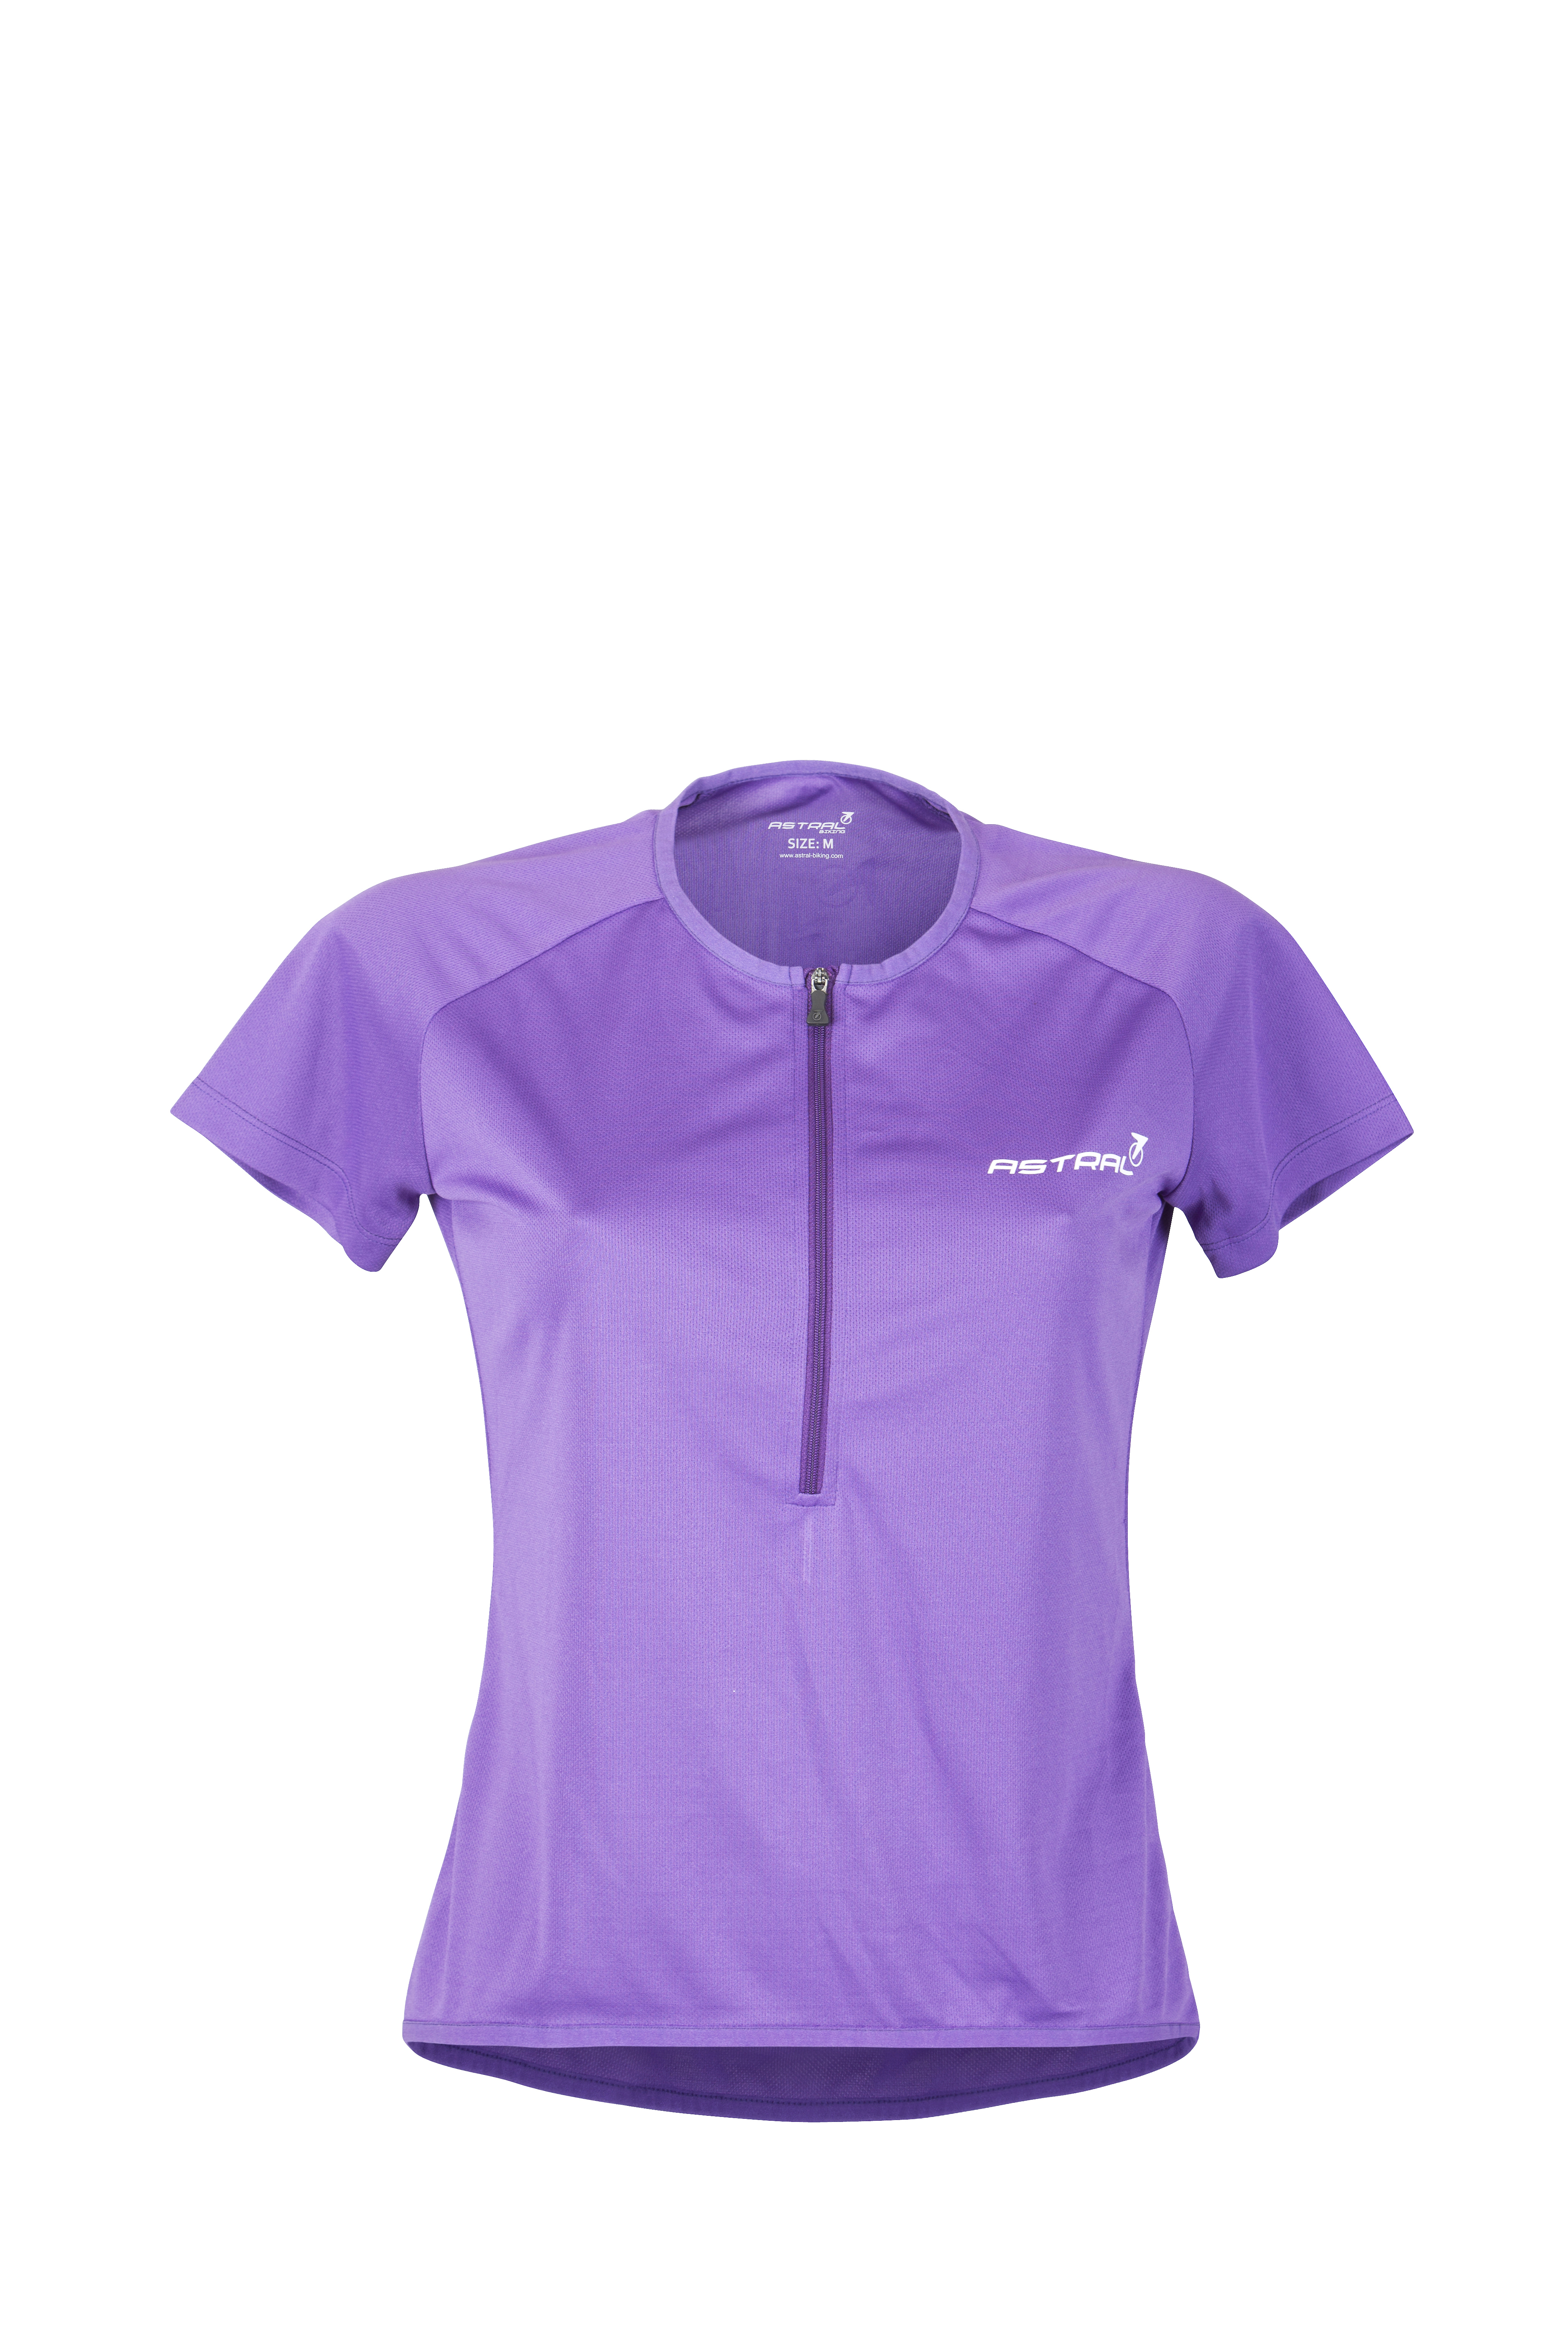 Astral Cykelbluse Spinning Lilla Dame   Jerseys